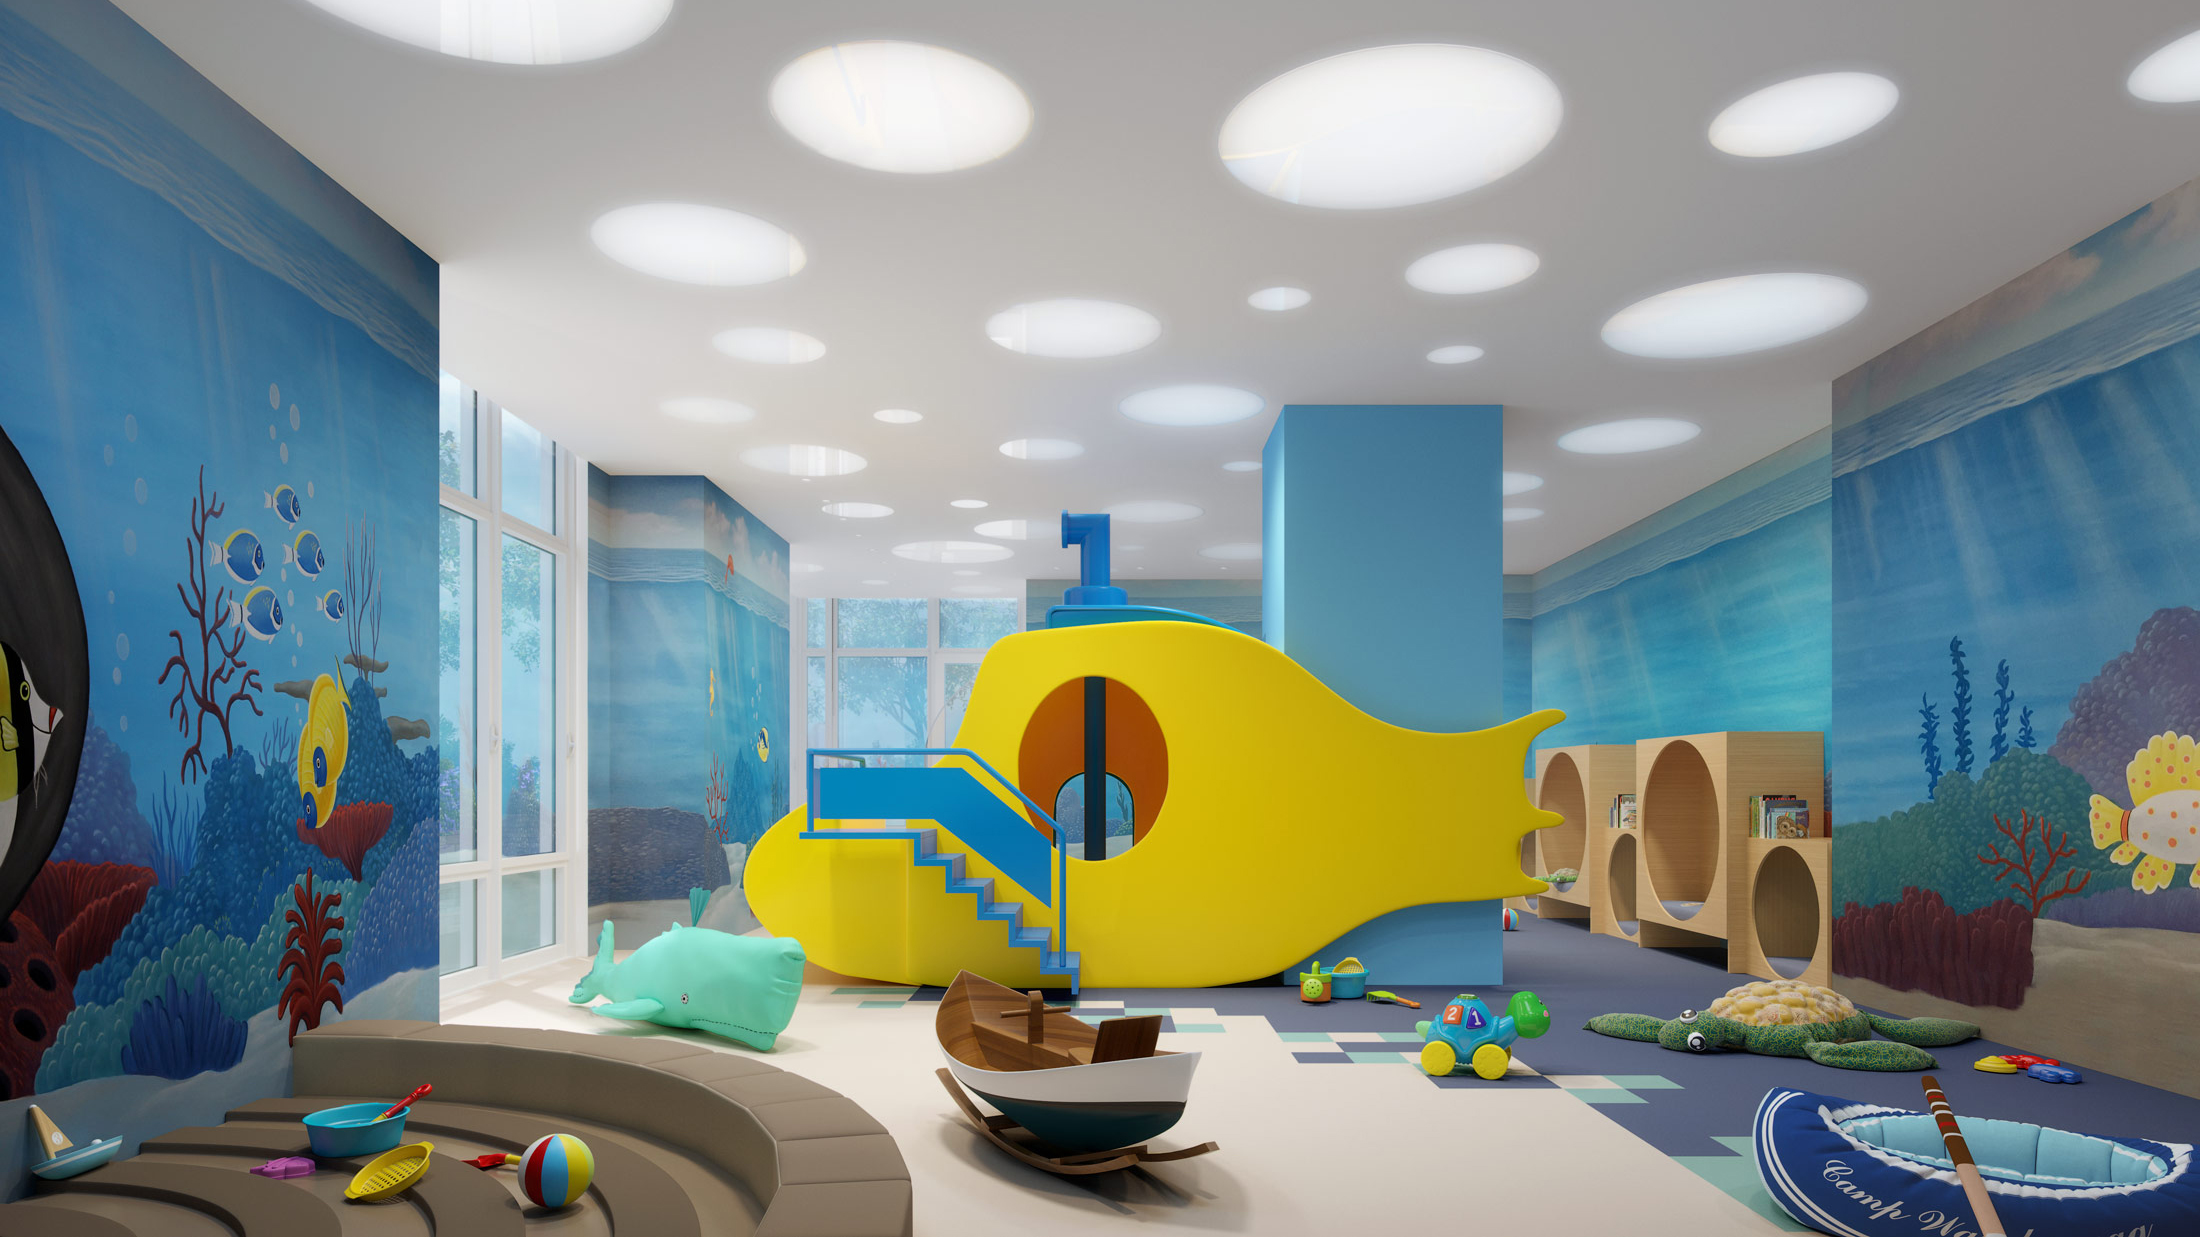 Architectural Rendering of the kids room of The Easton project located on the Upper East Side, New York City